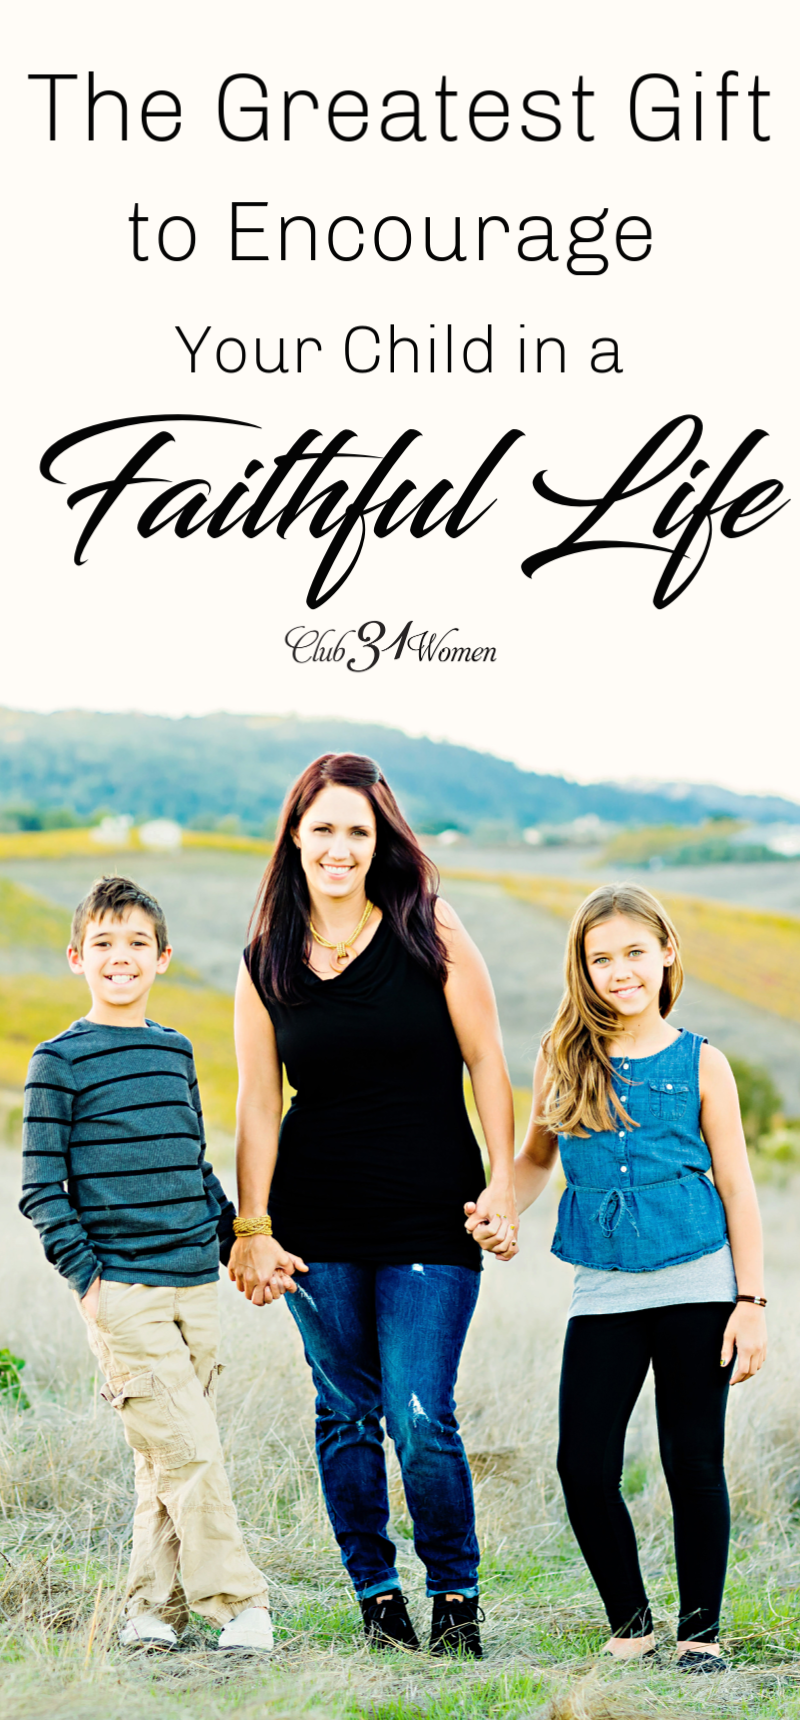 What is one of the best ways to encourage our children to live a faithful life? Here's a wonderful way to walk in the life God has for them! via @Club31Women